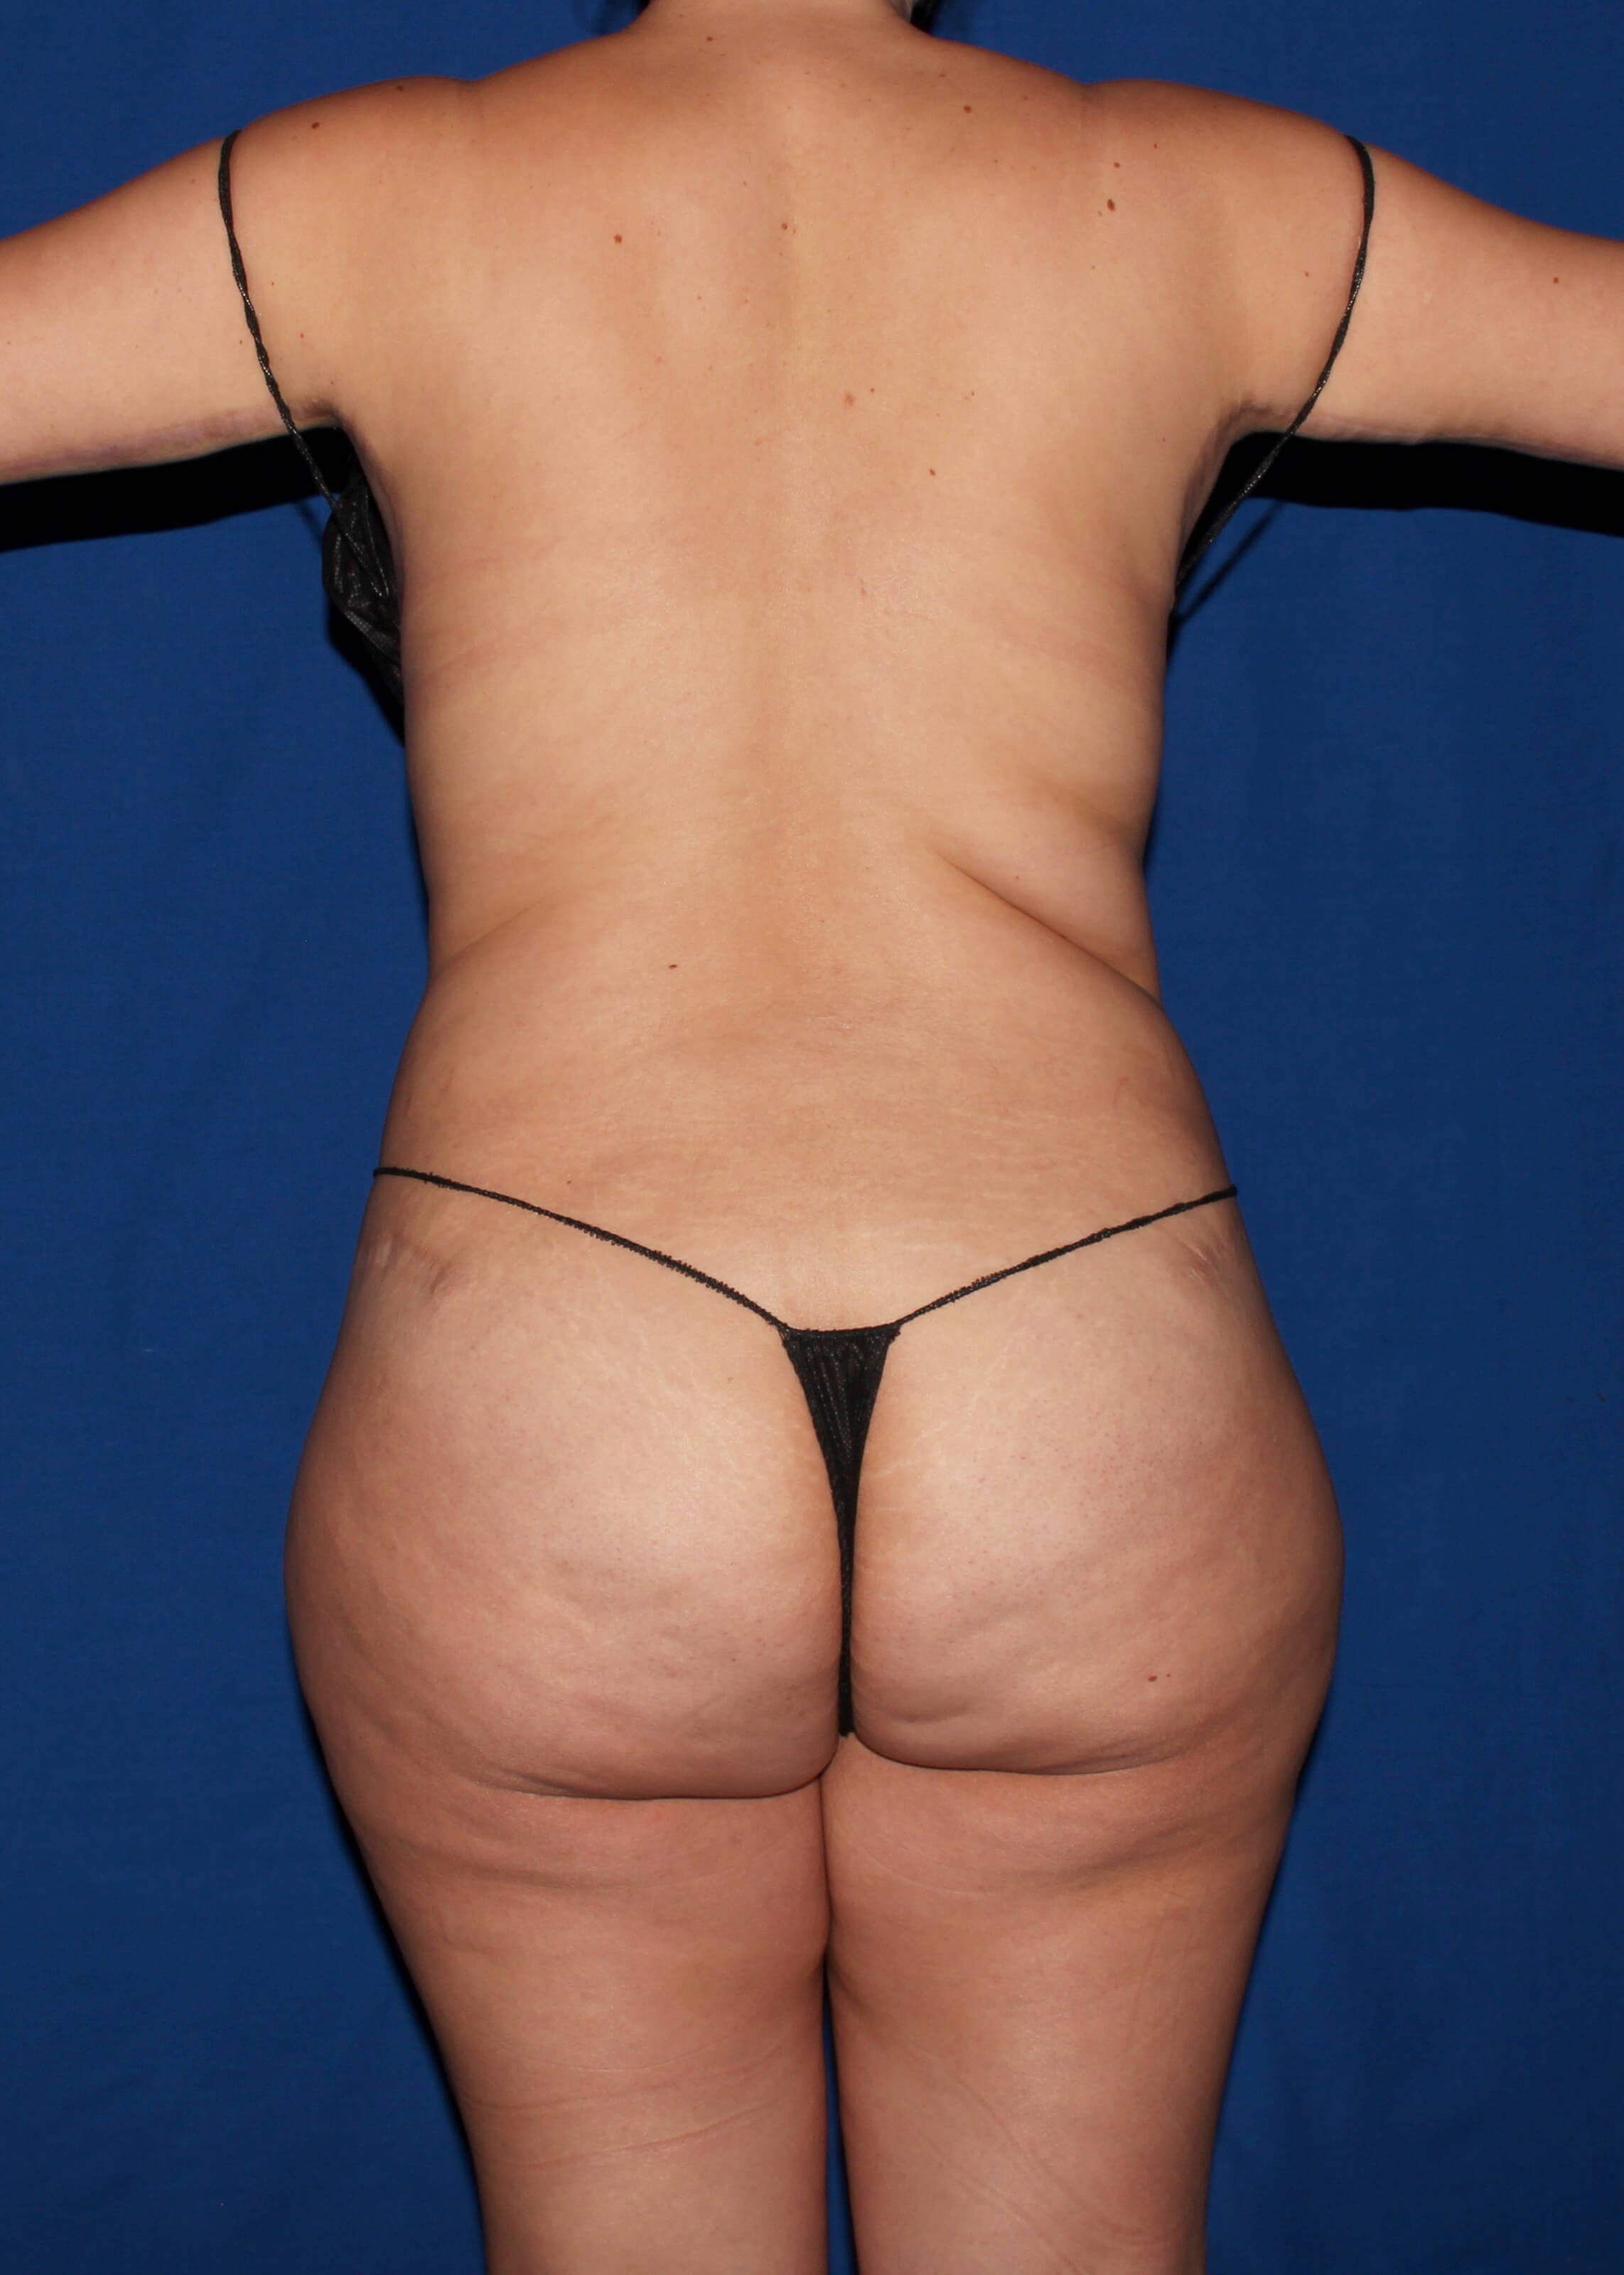 Before Liposuction - Back View